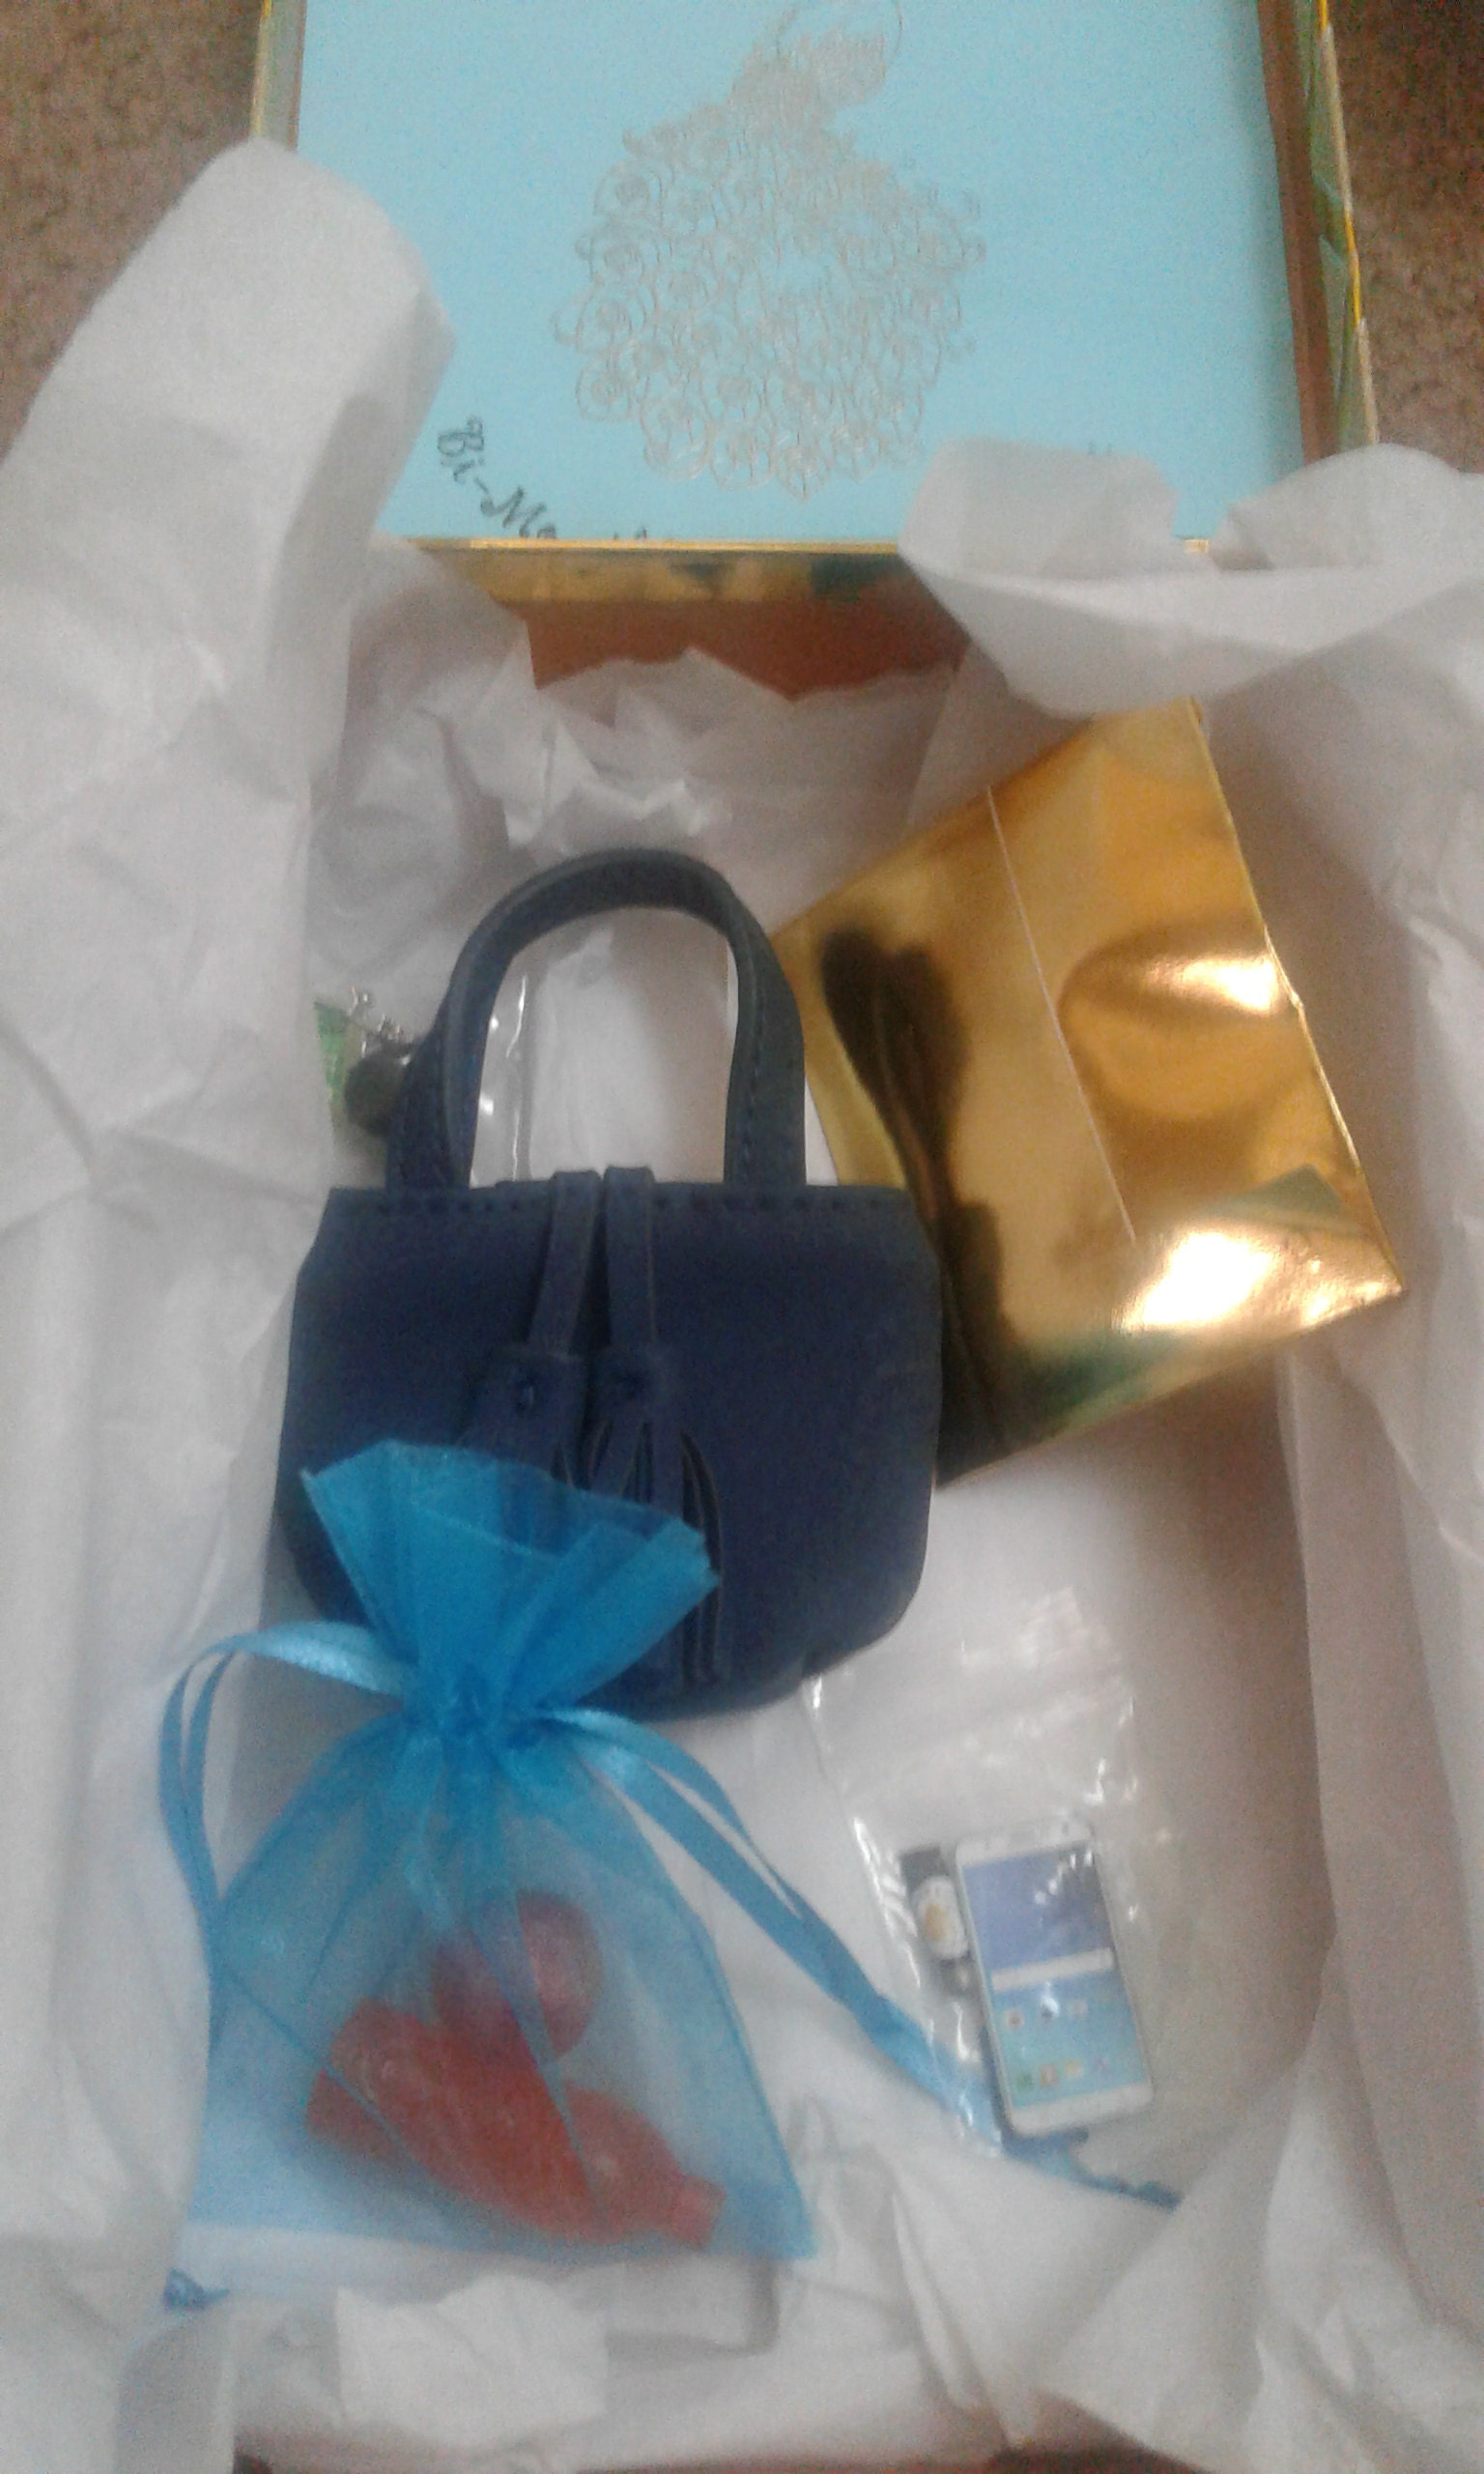 KENYA BRUNSON added a photo of their purchase